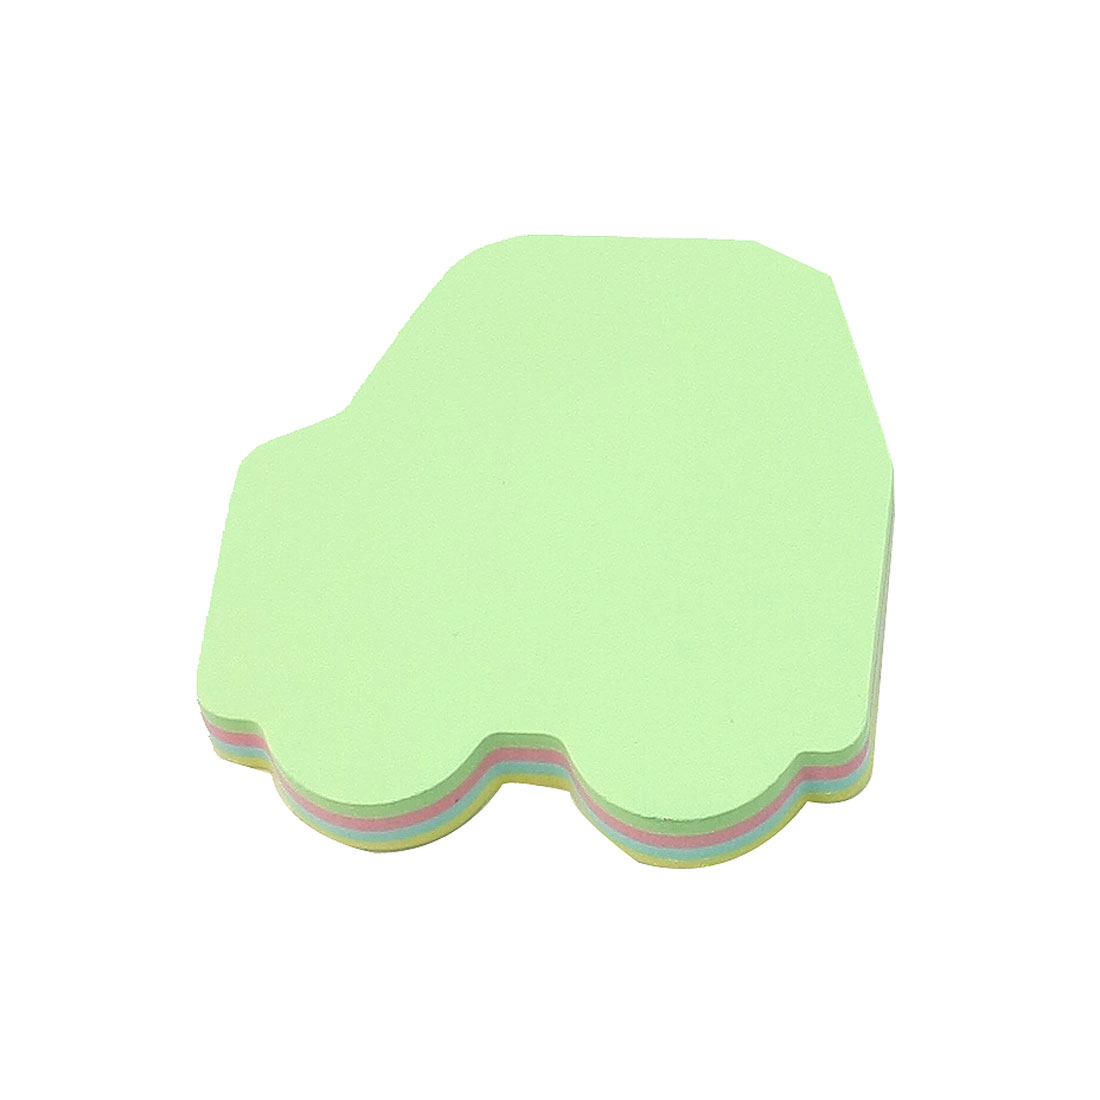 100 Sheets Mini Car Shape Colorful Self Sticky Note Pad for Work